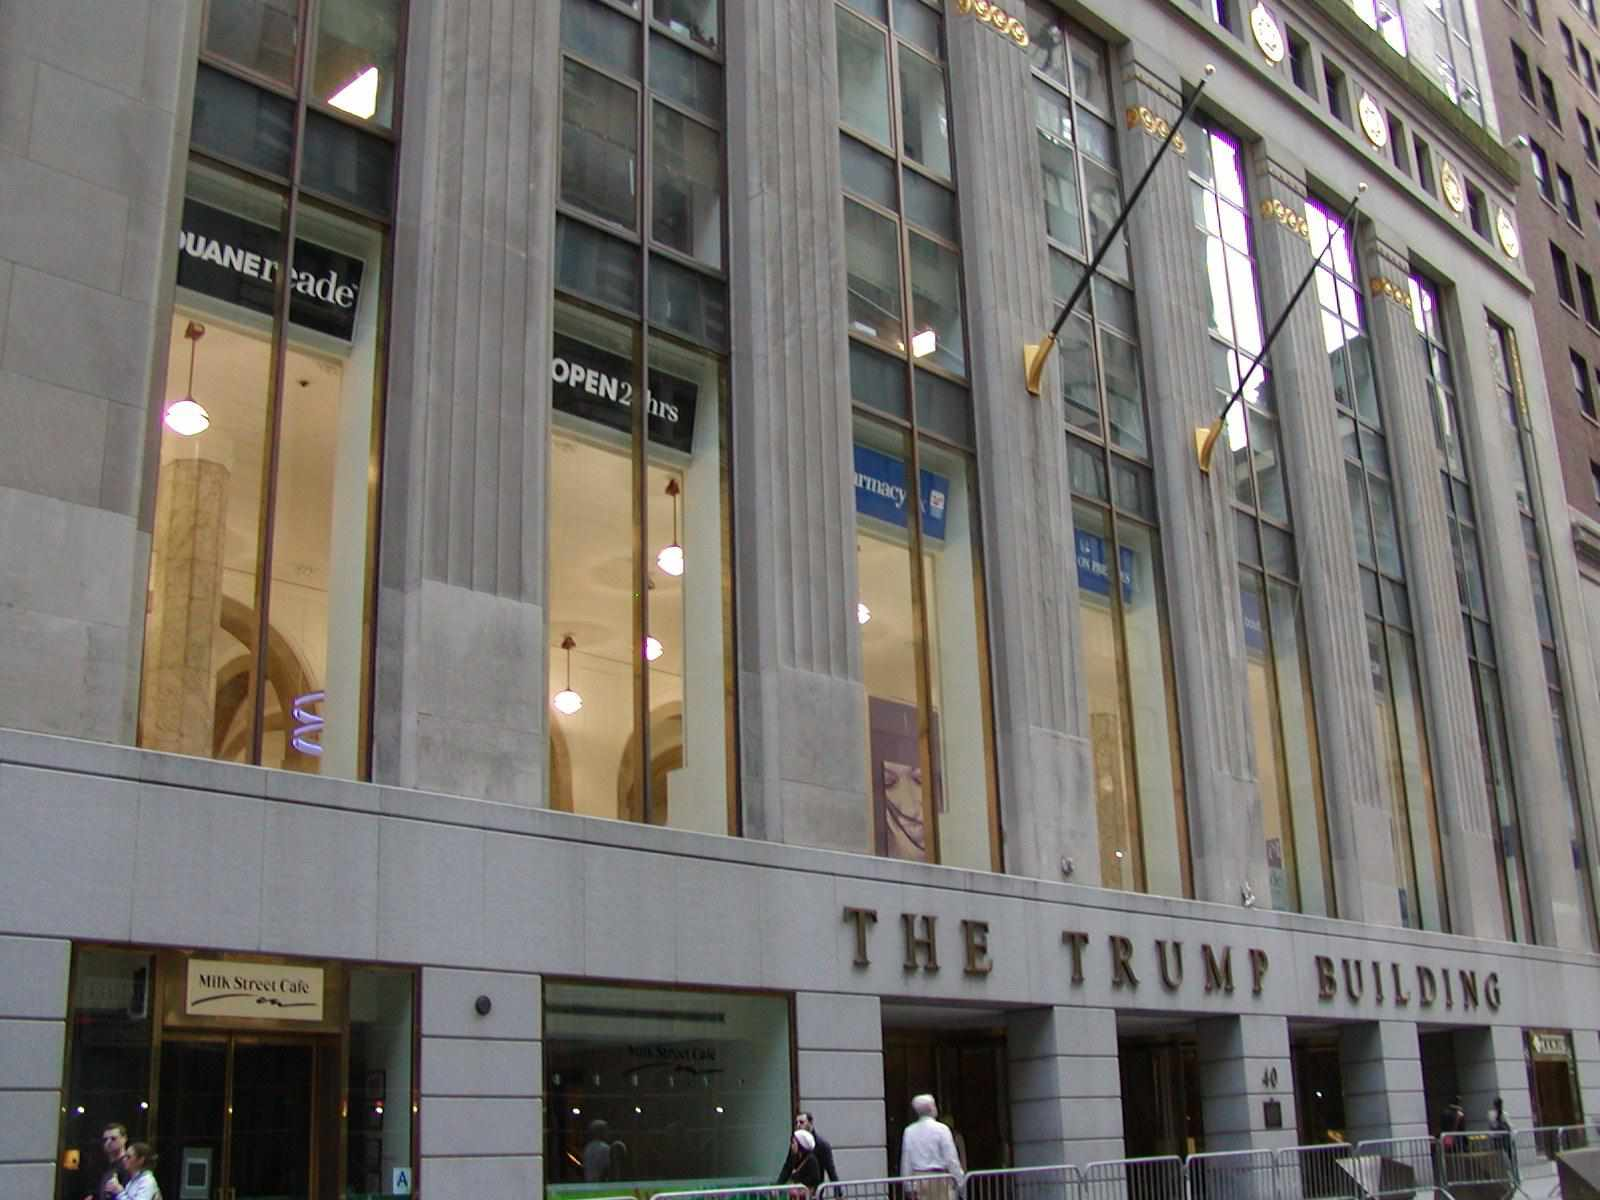 The Trump Building at street level, 40 Wall Street.